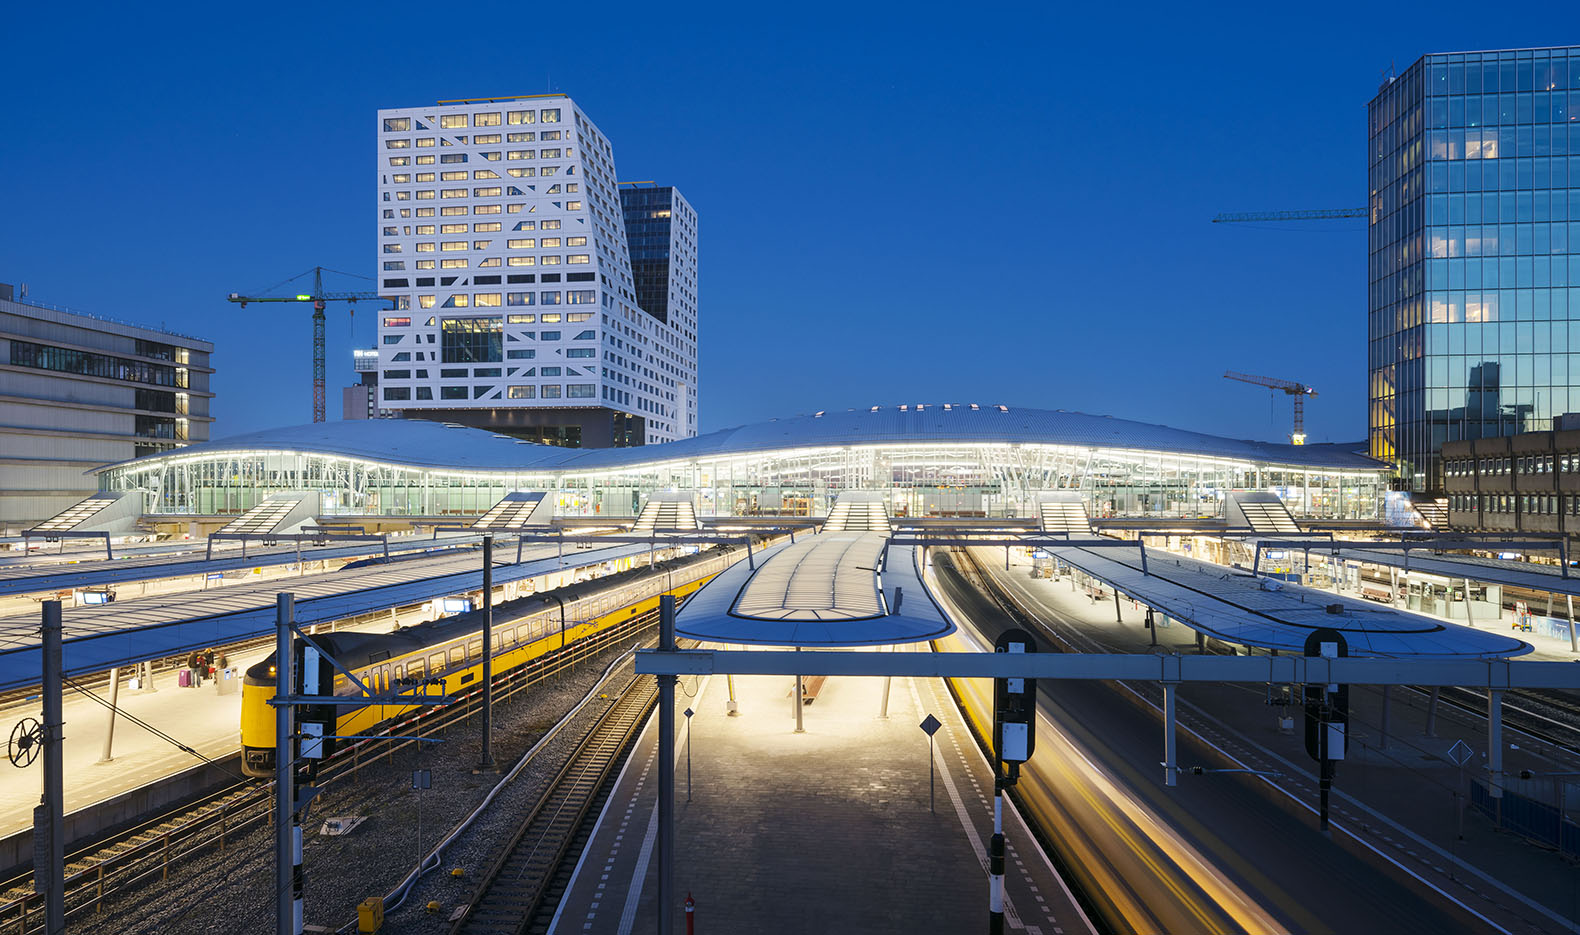 Designed by Benthem Crouwel Architects, the new Utrecht Central Station  will house train, bus and tram platforms under one undulating roof.